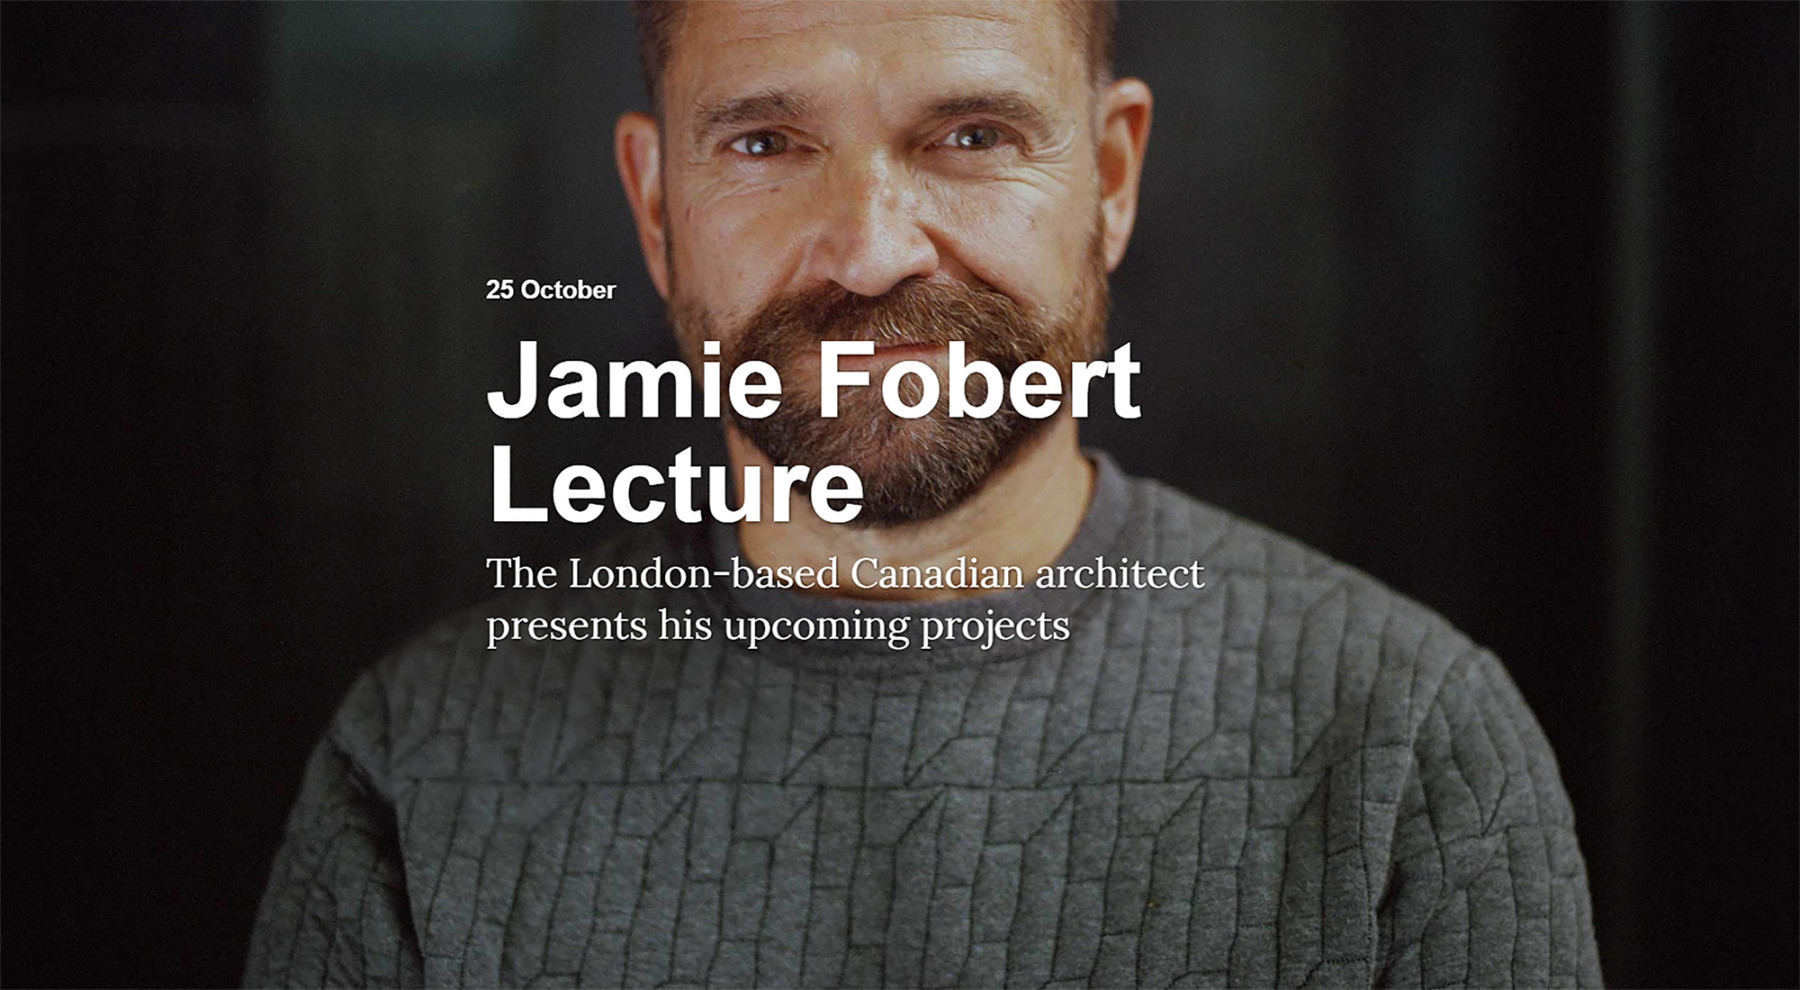 jamie-fobert-architecture-foundation-lecture-tate-st-ives-royal-institution